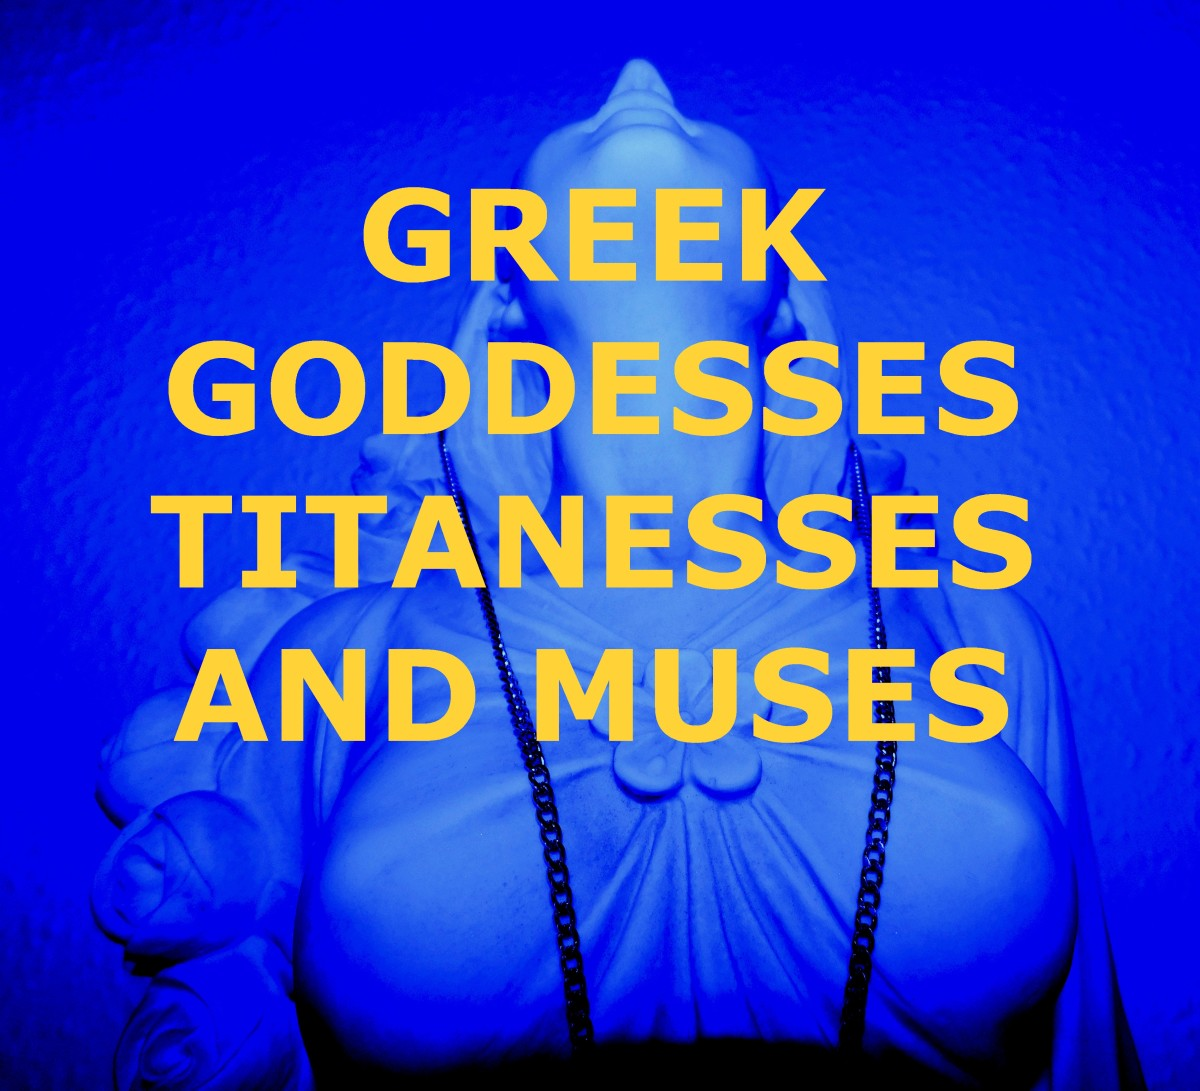 Who Were the Greek Goddesses, Titanesses, and Muses?